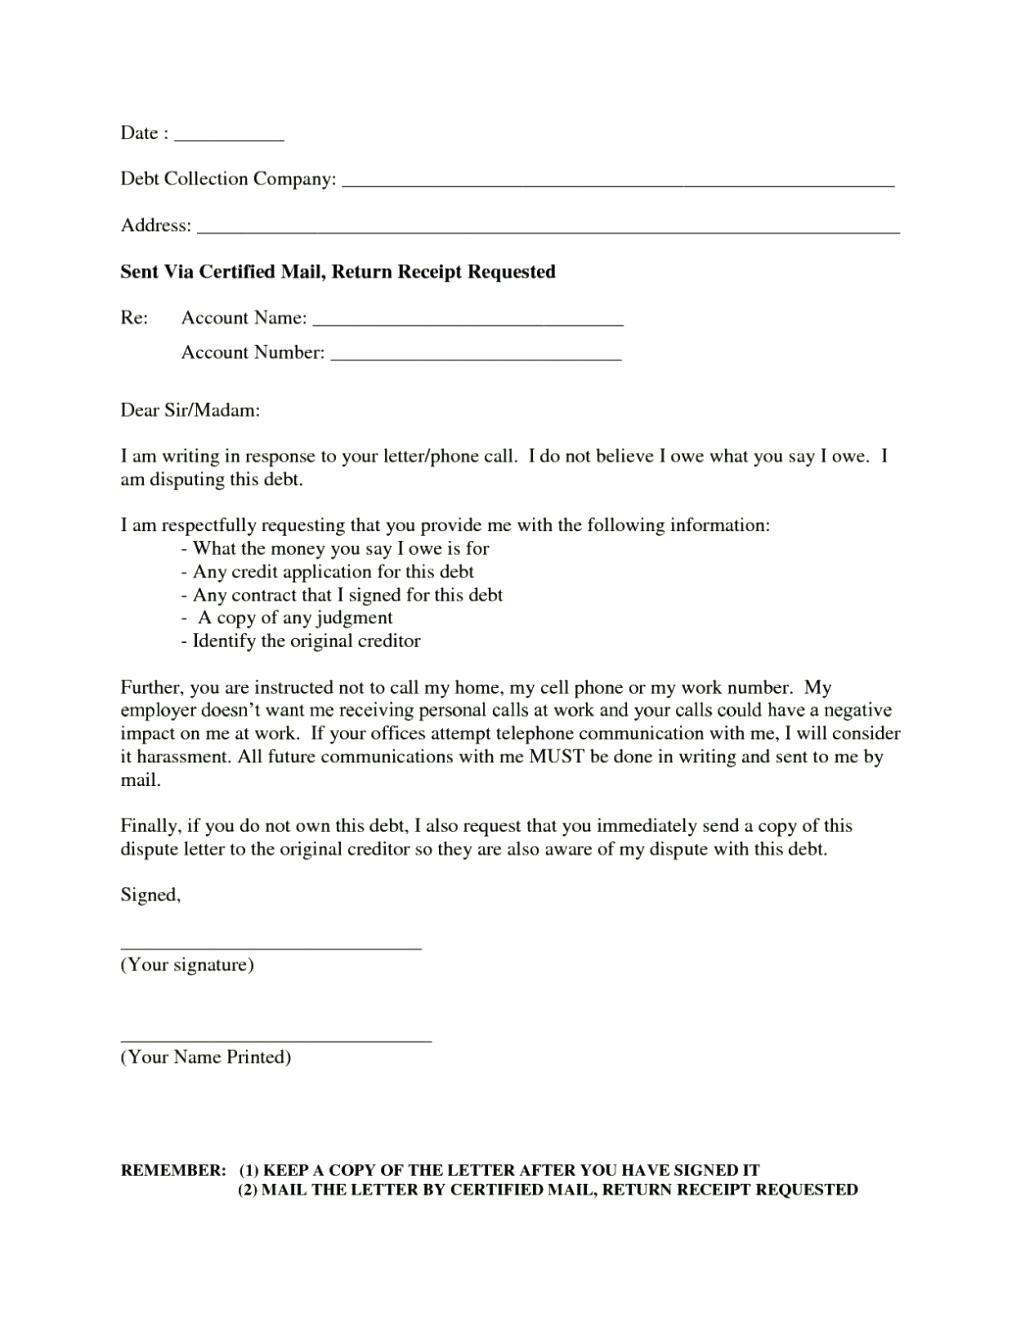 debt harassment template letter Collection-Sample debt collection dispute letter report template example good sample debt collection dispute letter report template 6-j